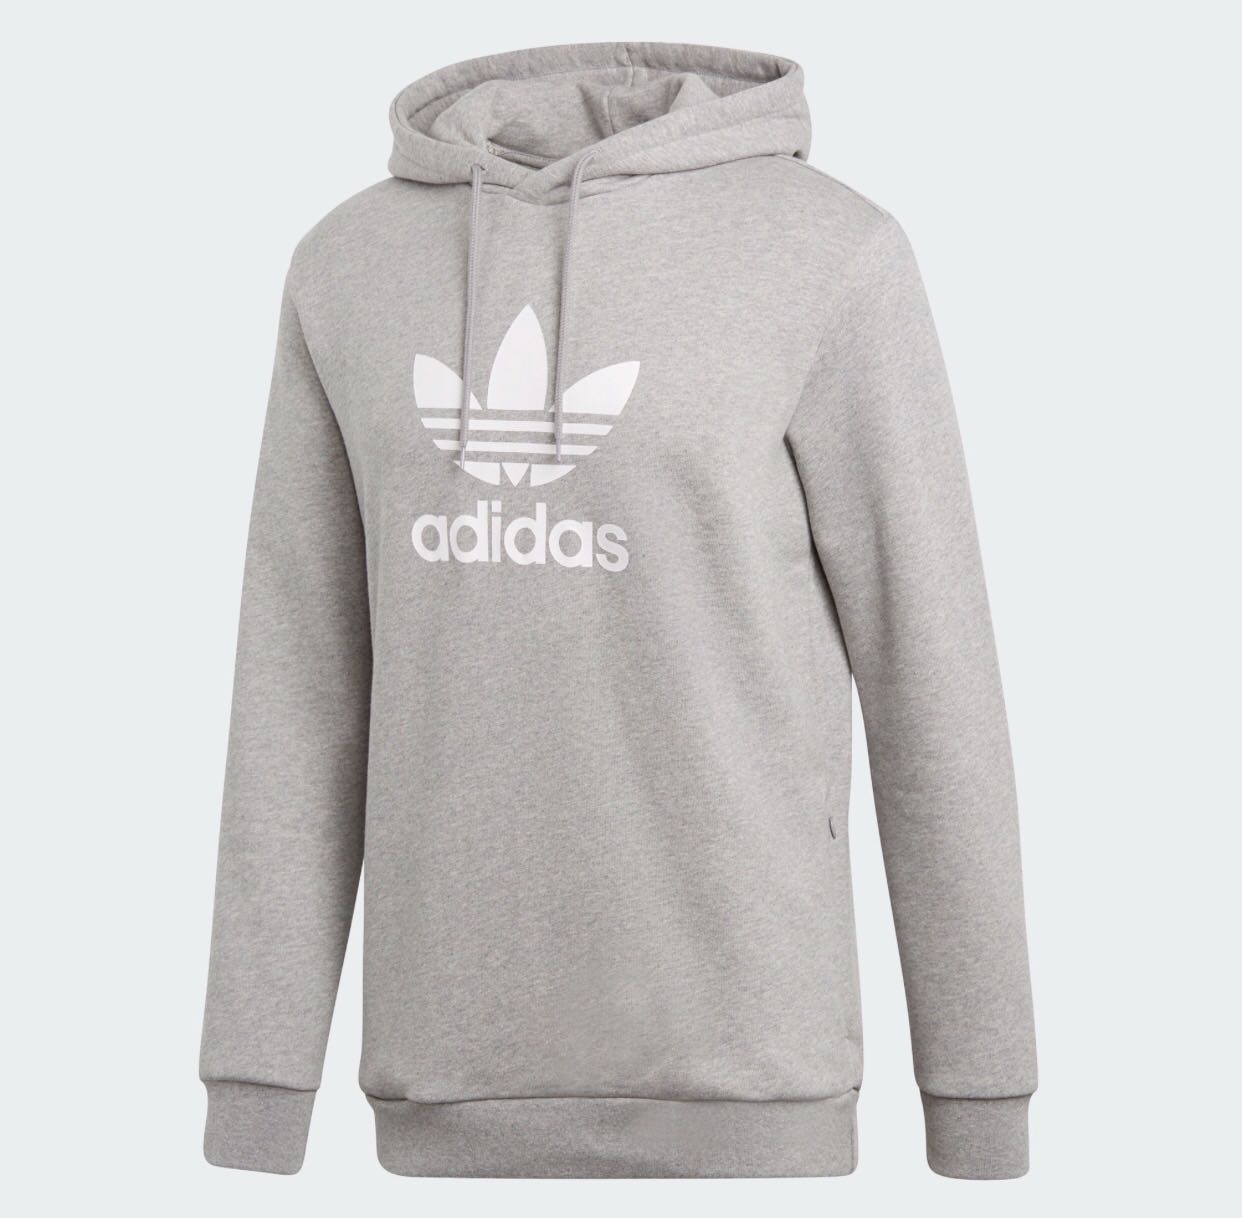 31a08458bdf43e Adidas Originals Adicolor Hoodie With Trefoil Logo GREY, Men's Fashion,  Clothes on Carousell